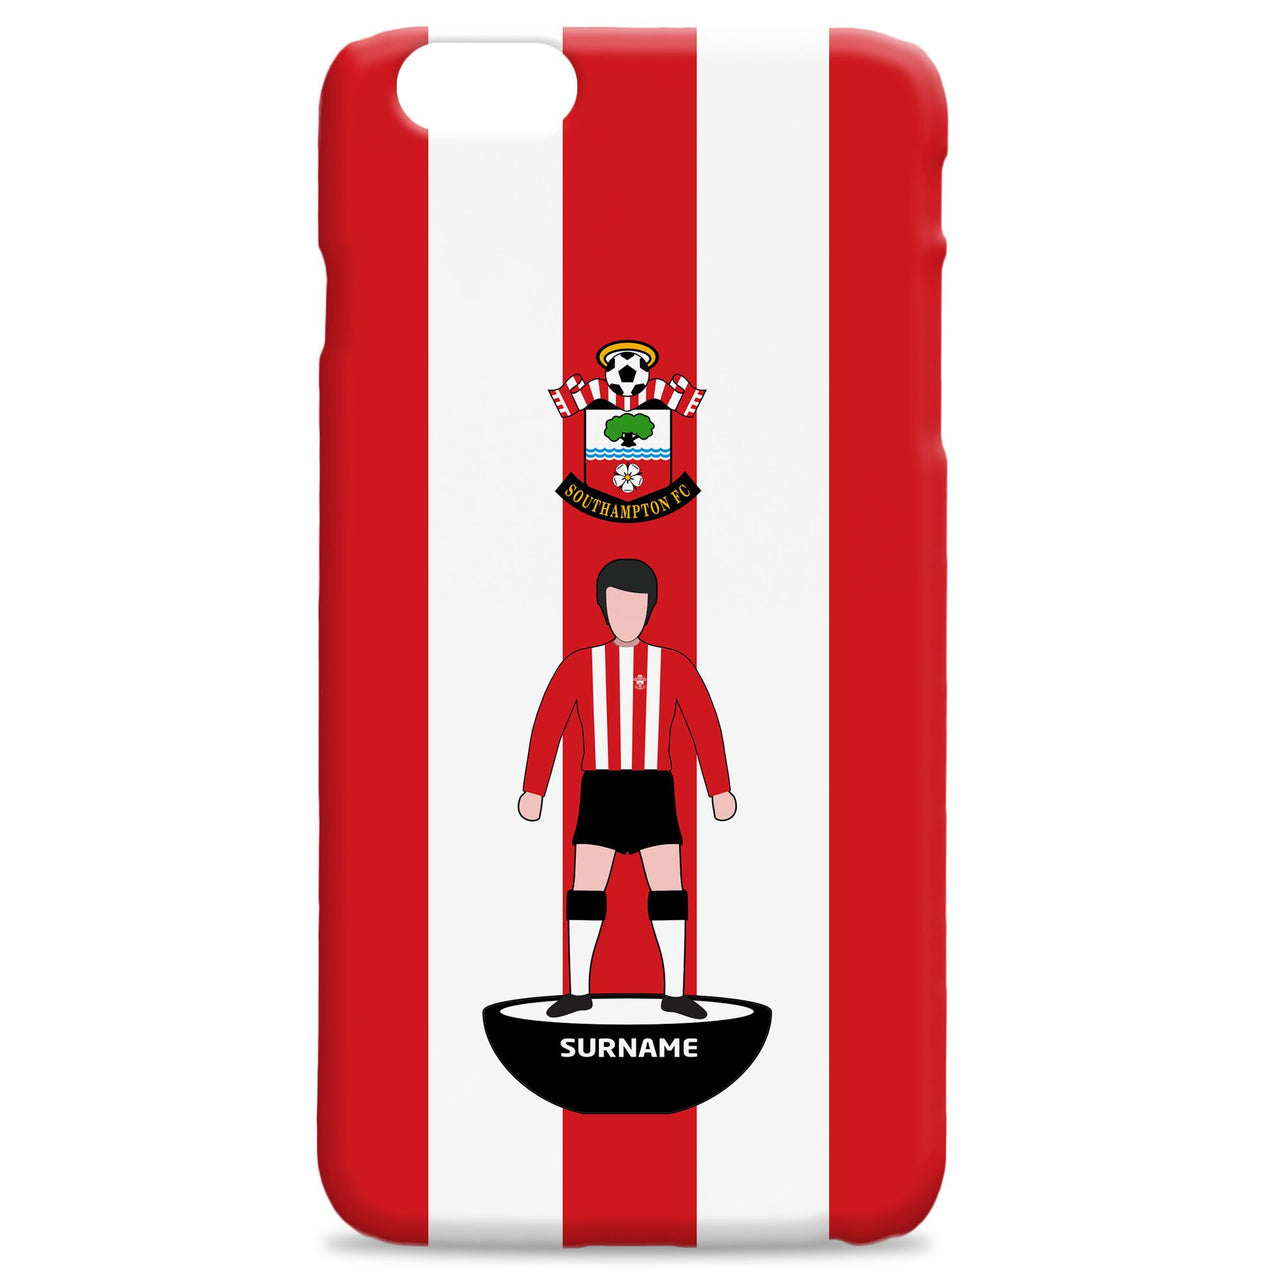 Southampton Player Figure Phone Case, Gifts